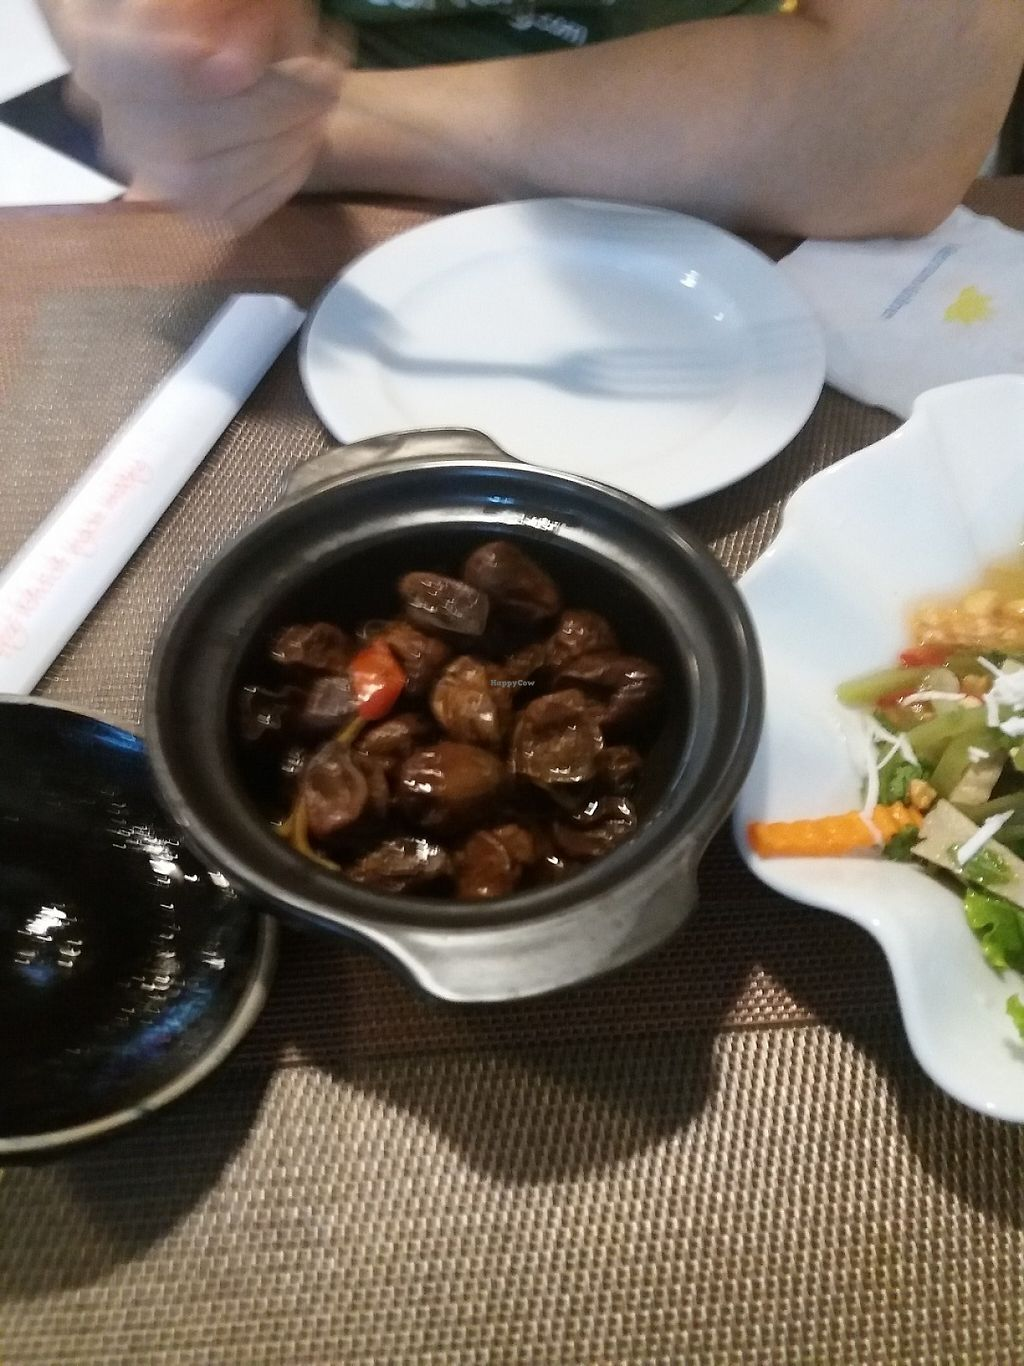 "Photo of CLOSED: Spring Lotus - Duong Sinh Chay  by <a href=""/members/profile/veganvirtues"">veganvirtues</a> <br/>Mushrooms in crock pot <br/> May 20, 2017  - <a href='/contact/abuse/image/90983/260562'>Report</a>"